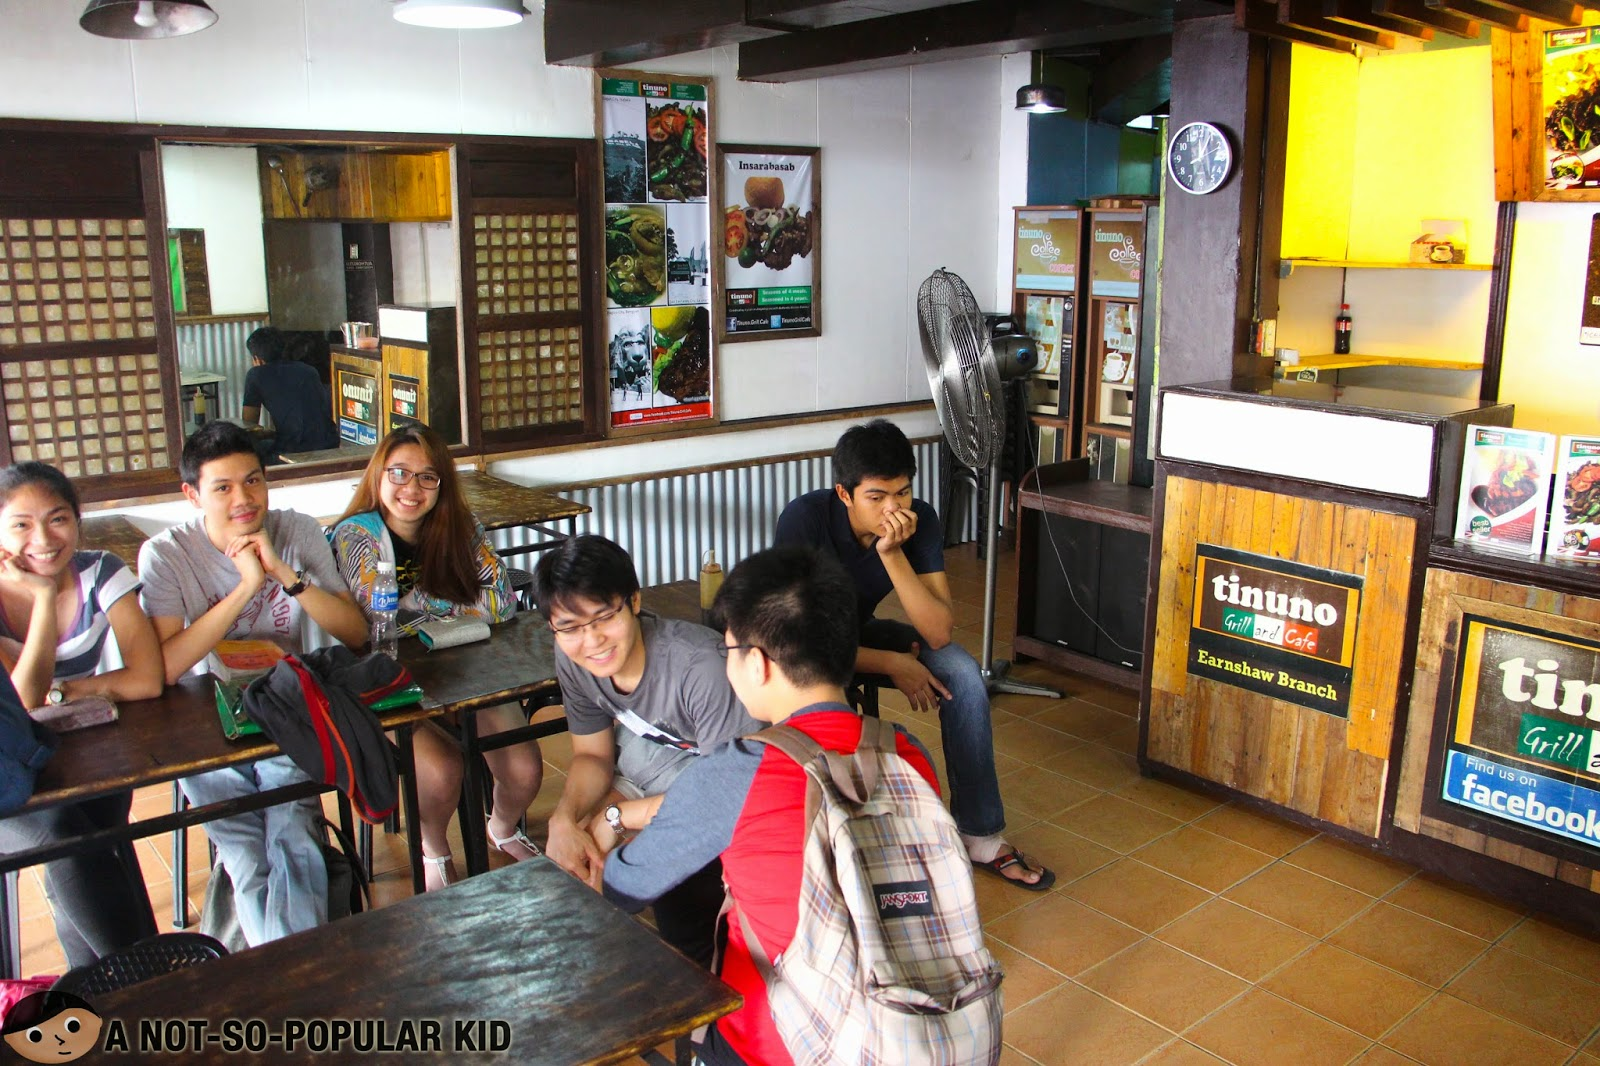 Interior of Tinuno showing my foodie friends waiting for the orders